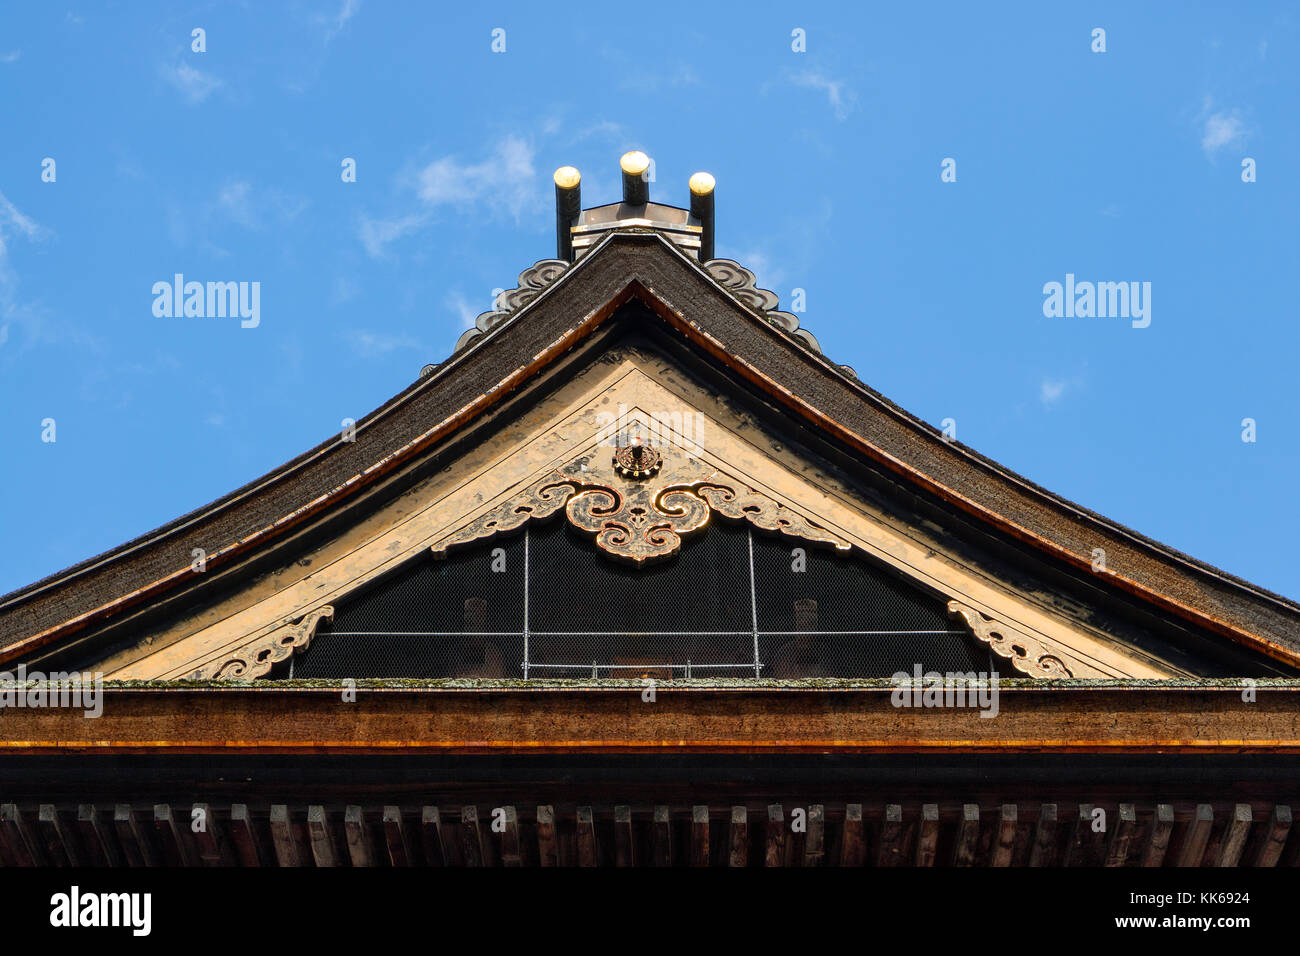 Japanese Temple Roof Stock Photos Amp Japanese Temple Roof